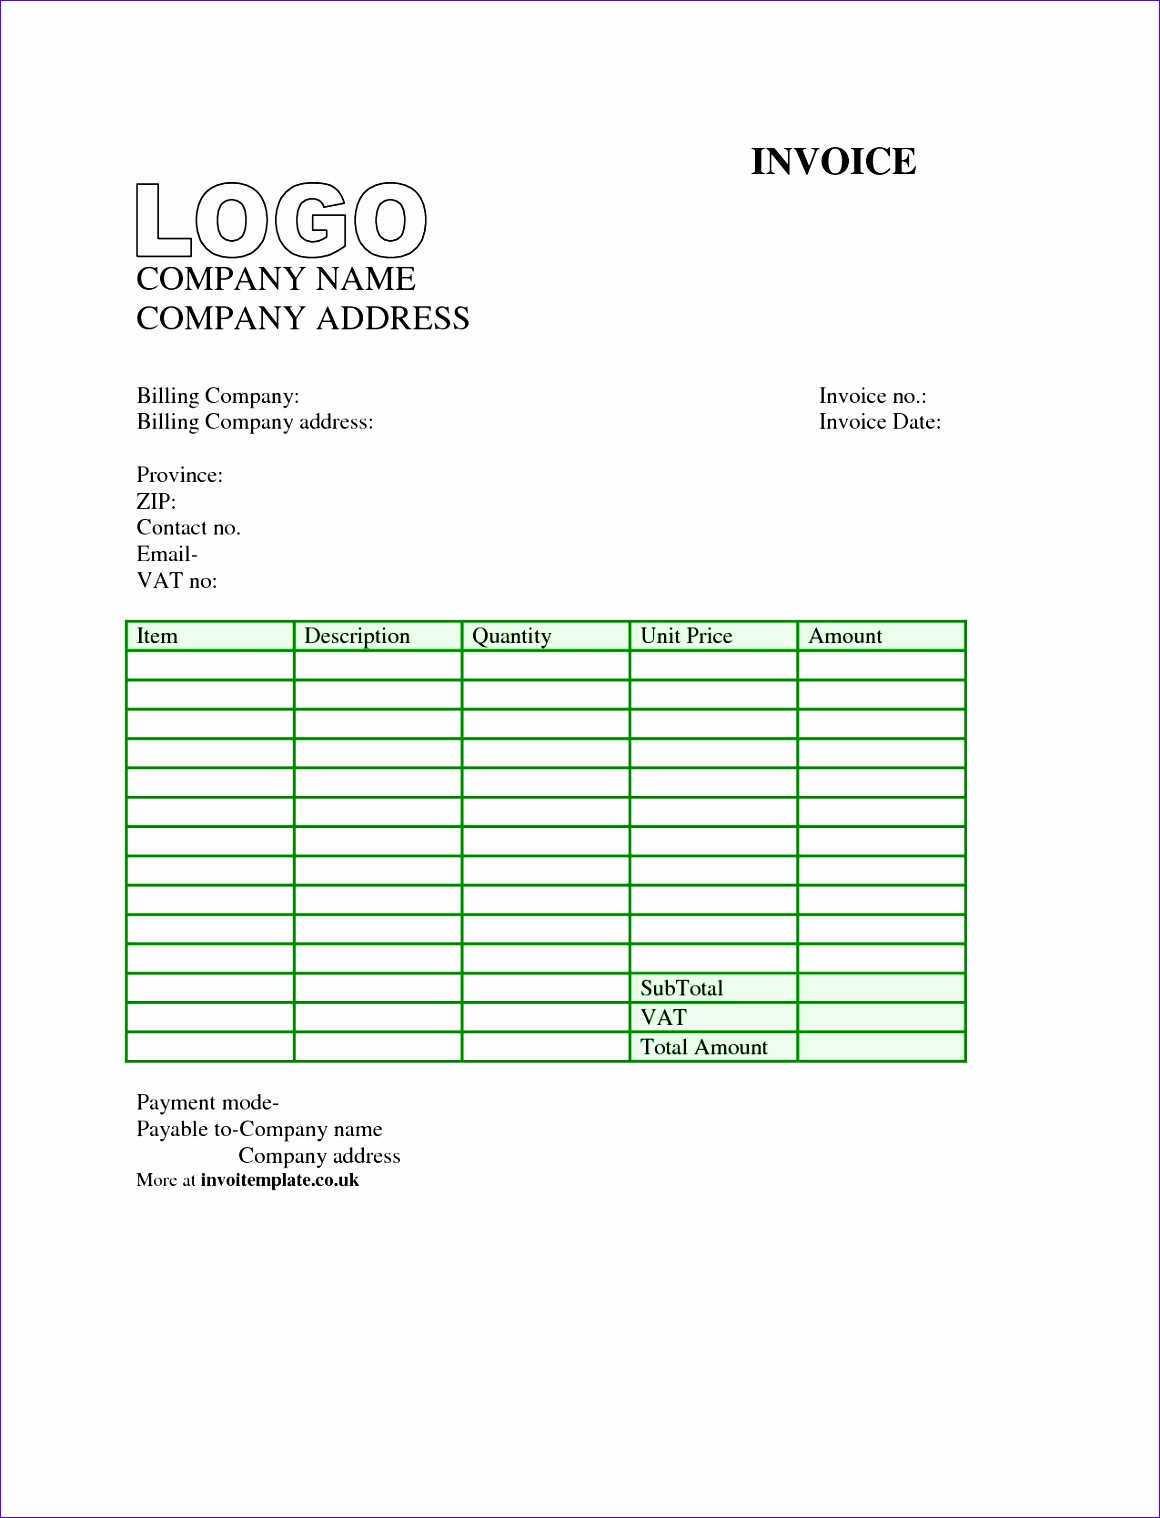 Invoice Template Nz Excel Ivurd New Free Invoice Template Uk Mac 12751650